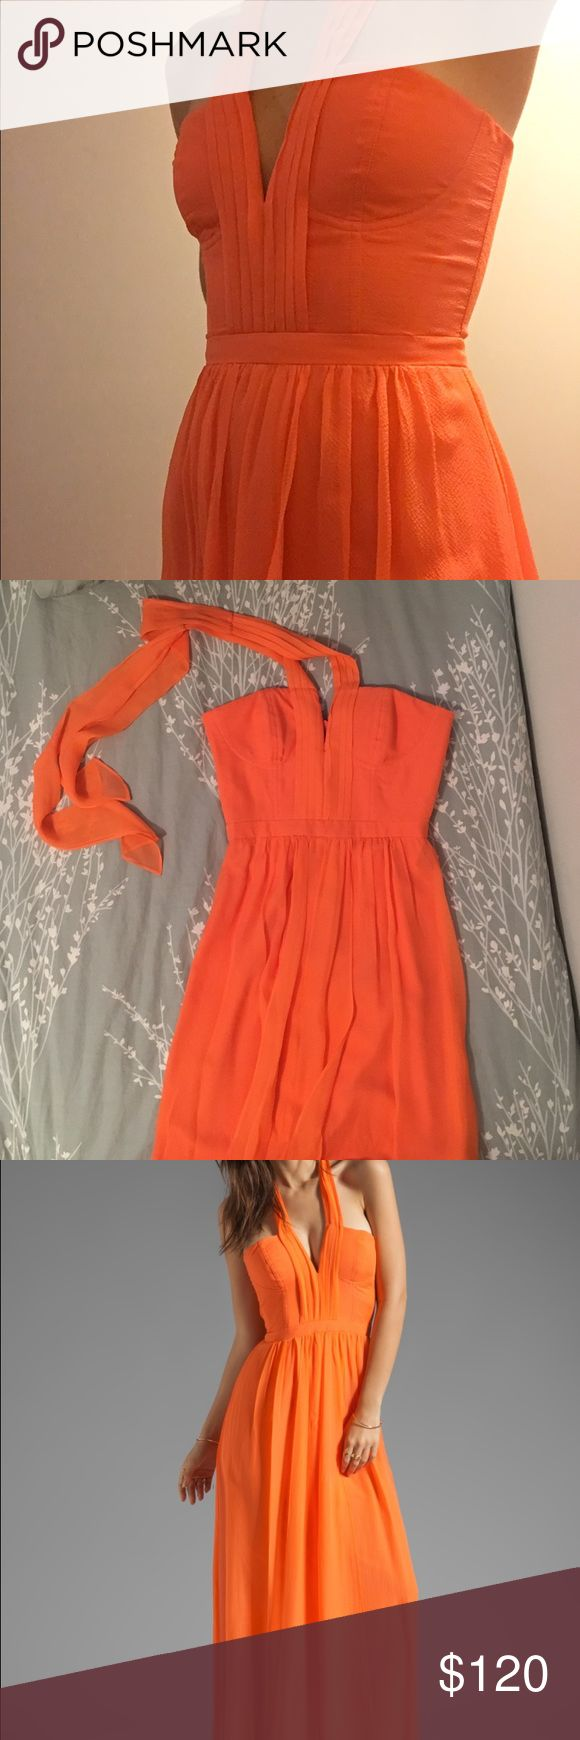 BCBG MaxAzria Full Length Dress BCBG MaxAzria orange gown. Size 0. Fitted top with a flowing bottom. Zipper is in the back.  Tie around the neck does not bare any weight. Perfect for a special/formal occasion. BCBGMaxAzria Dresses Prom